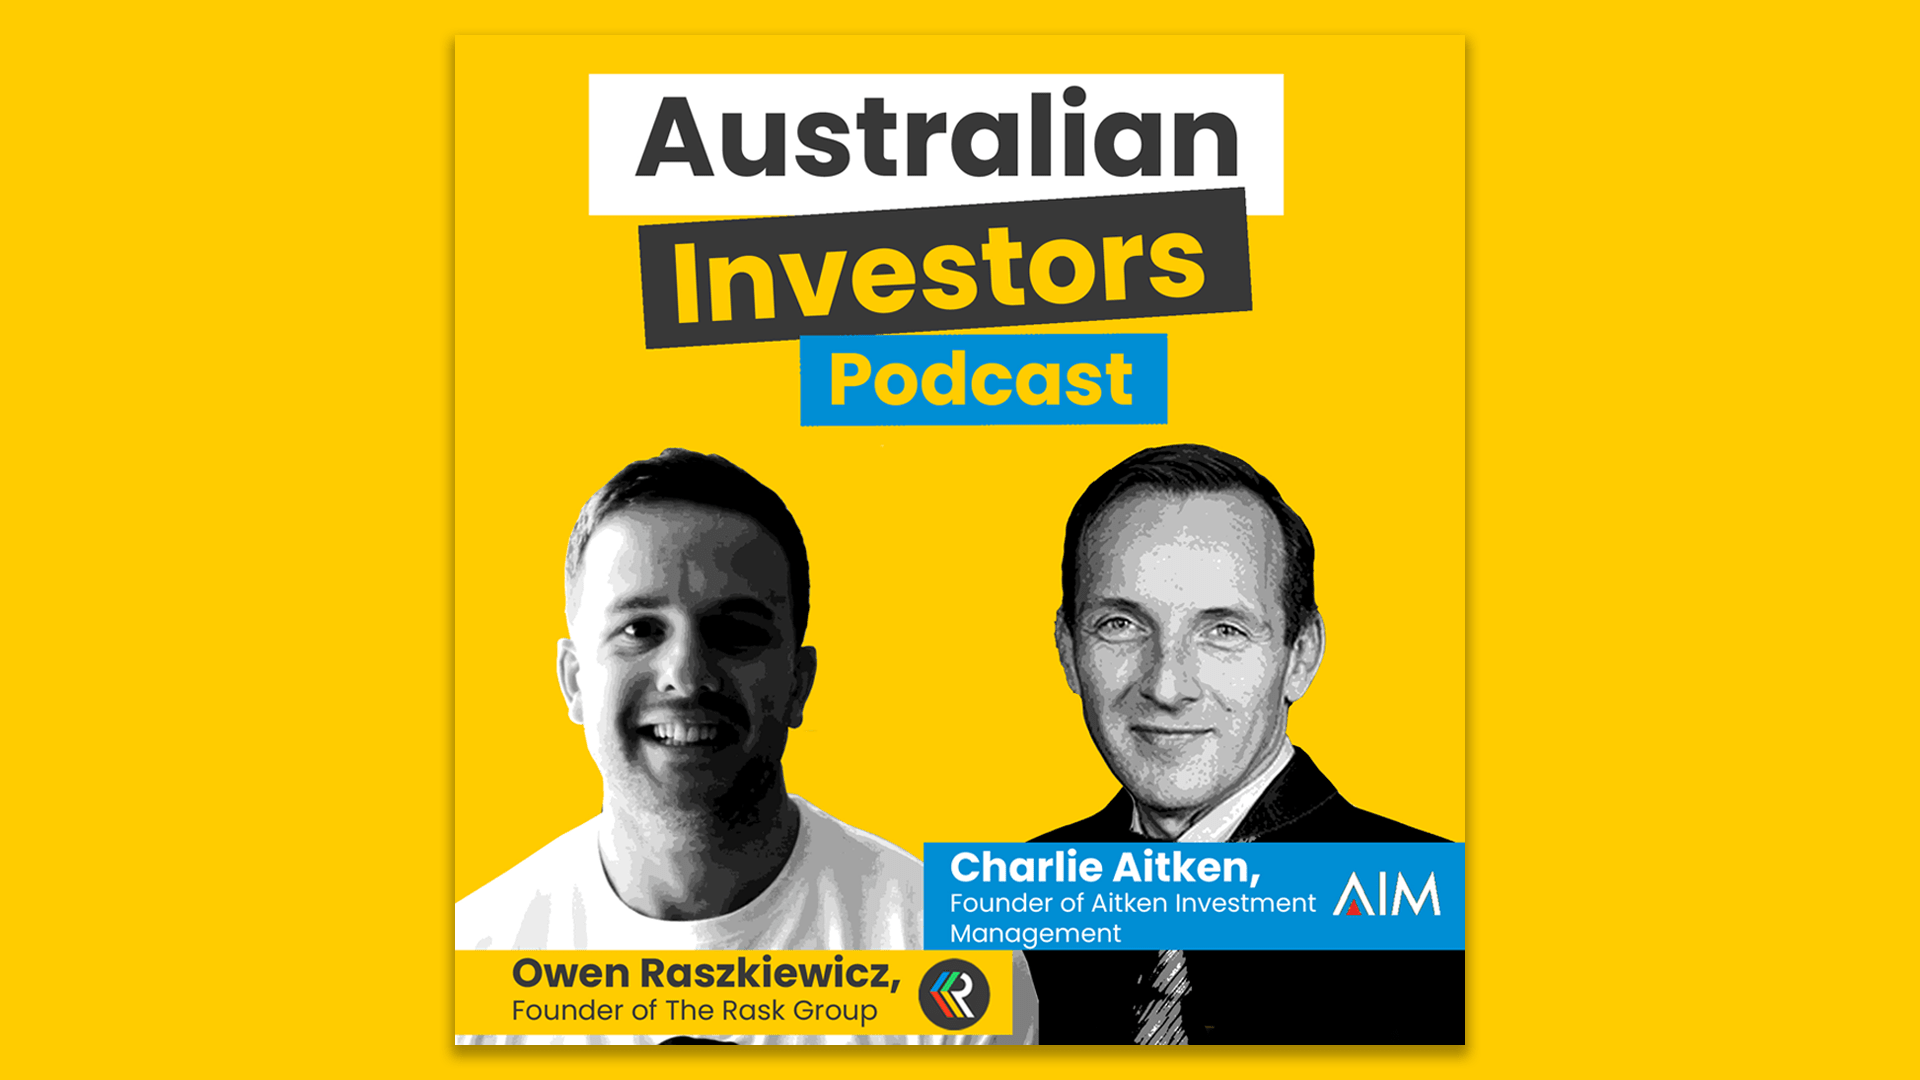 Charlie Aitken on The Australian Investors Podcast